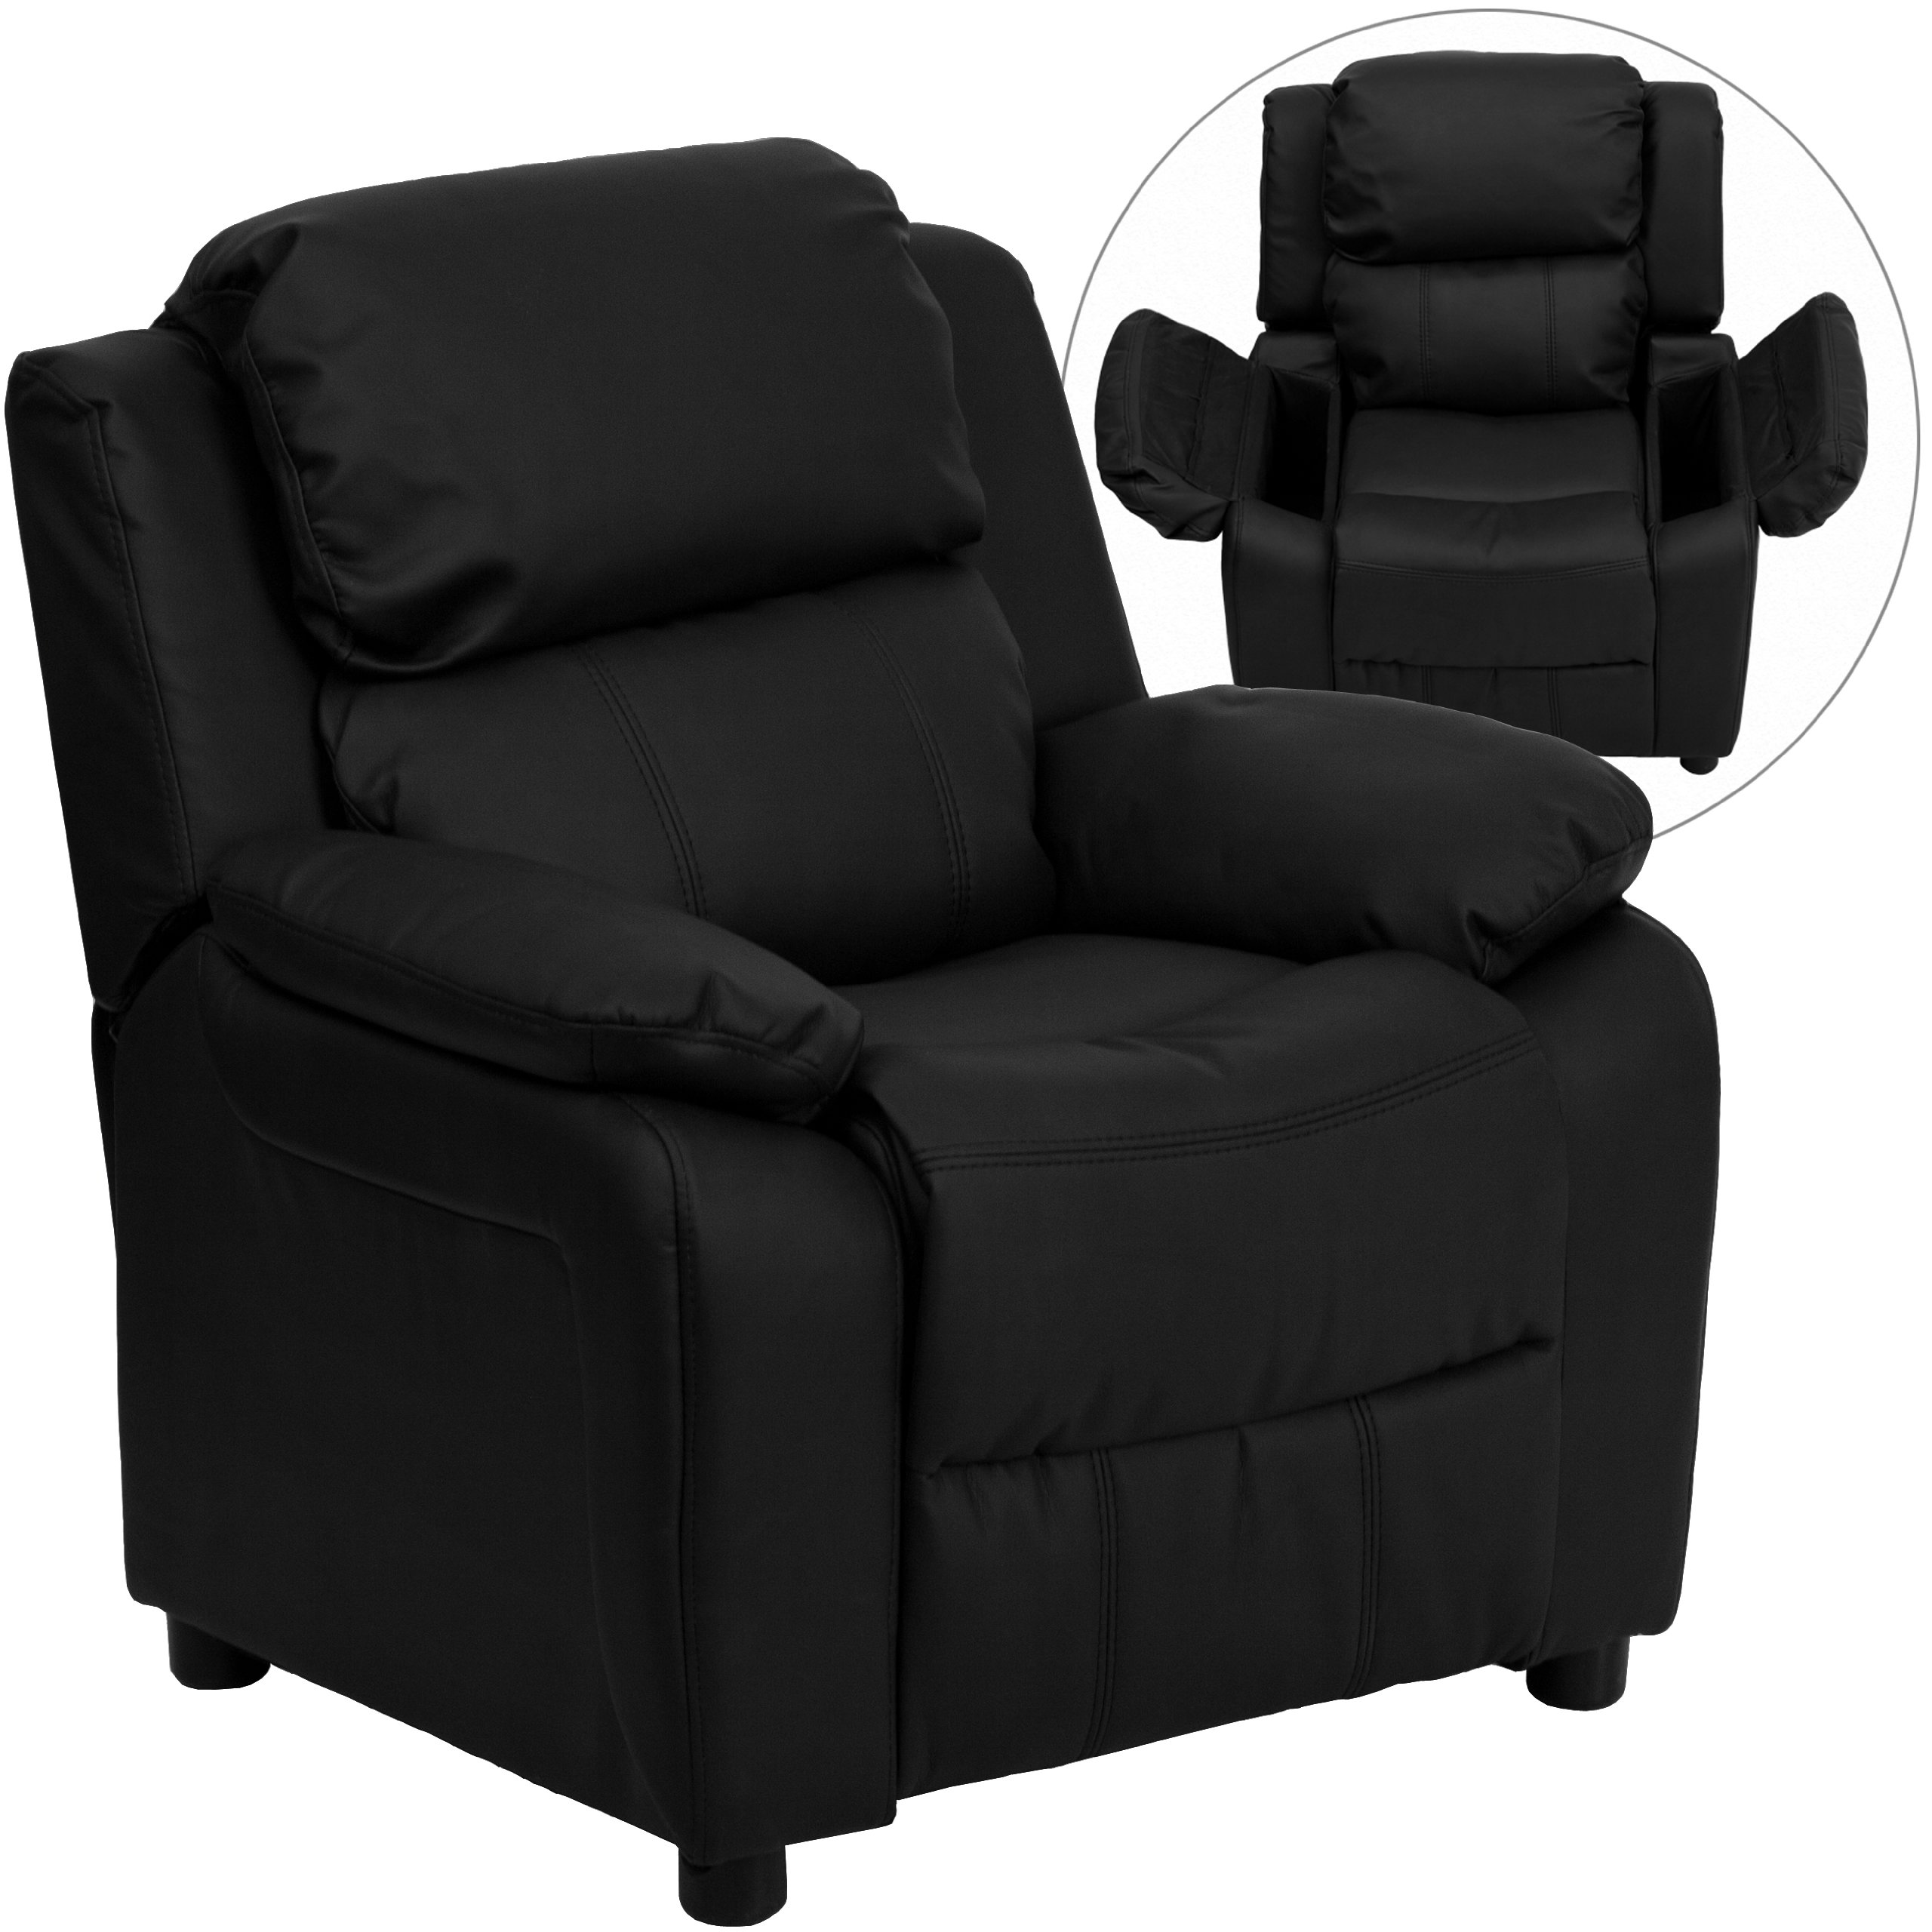 Winston Direct Kids' Series Deluxe Padded Contemporary Black Leather Recliner with Storage Arms